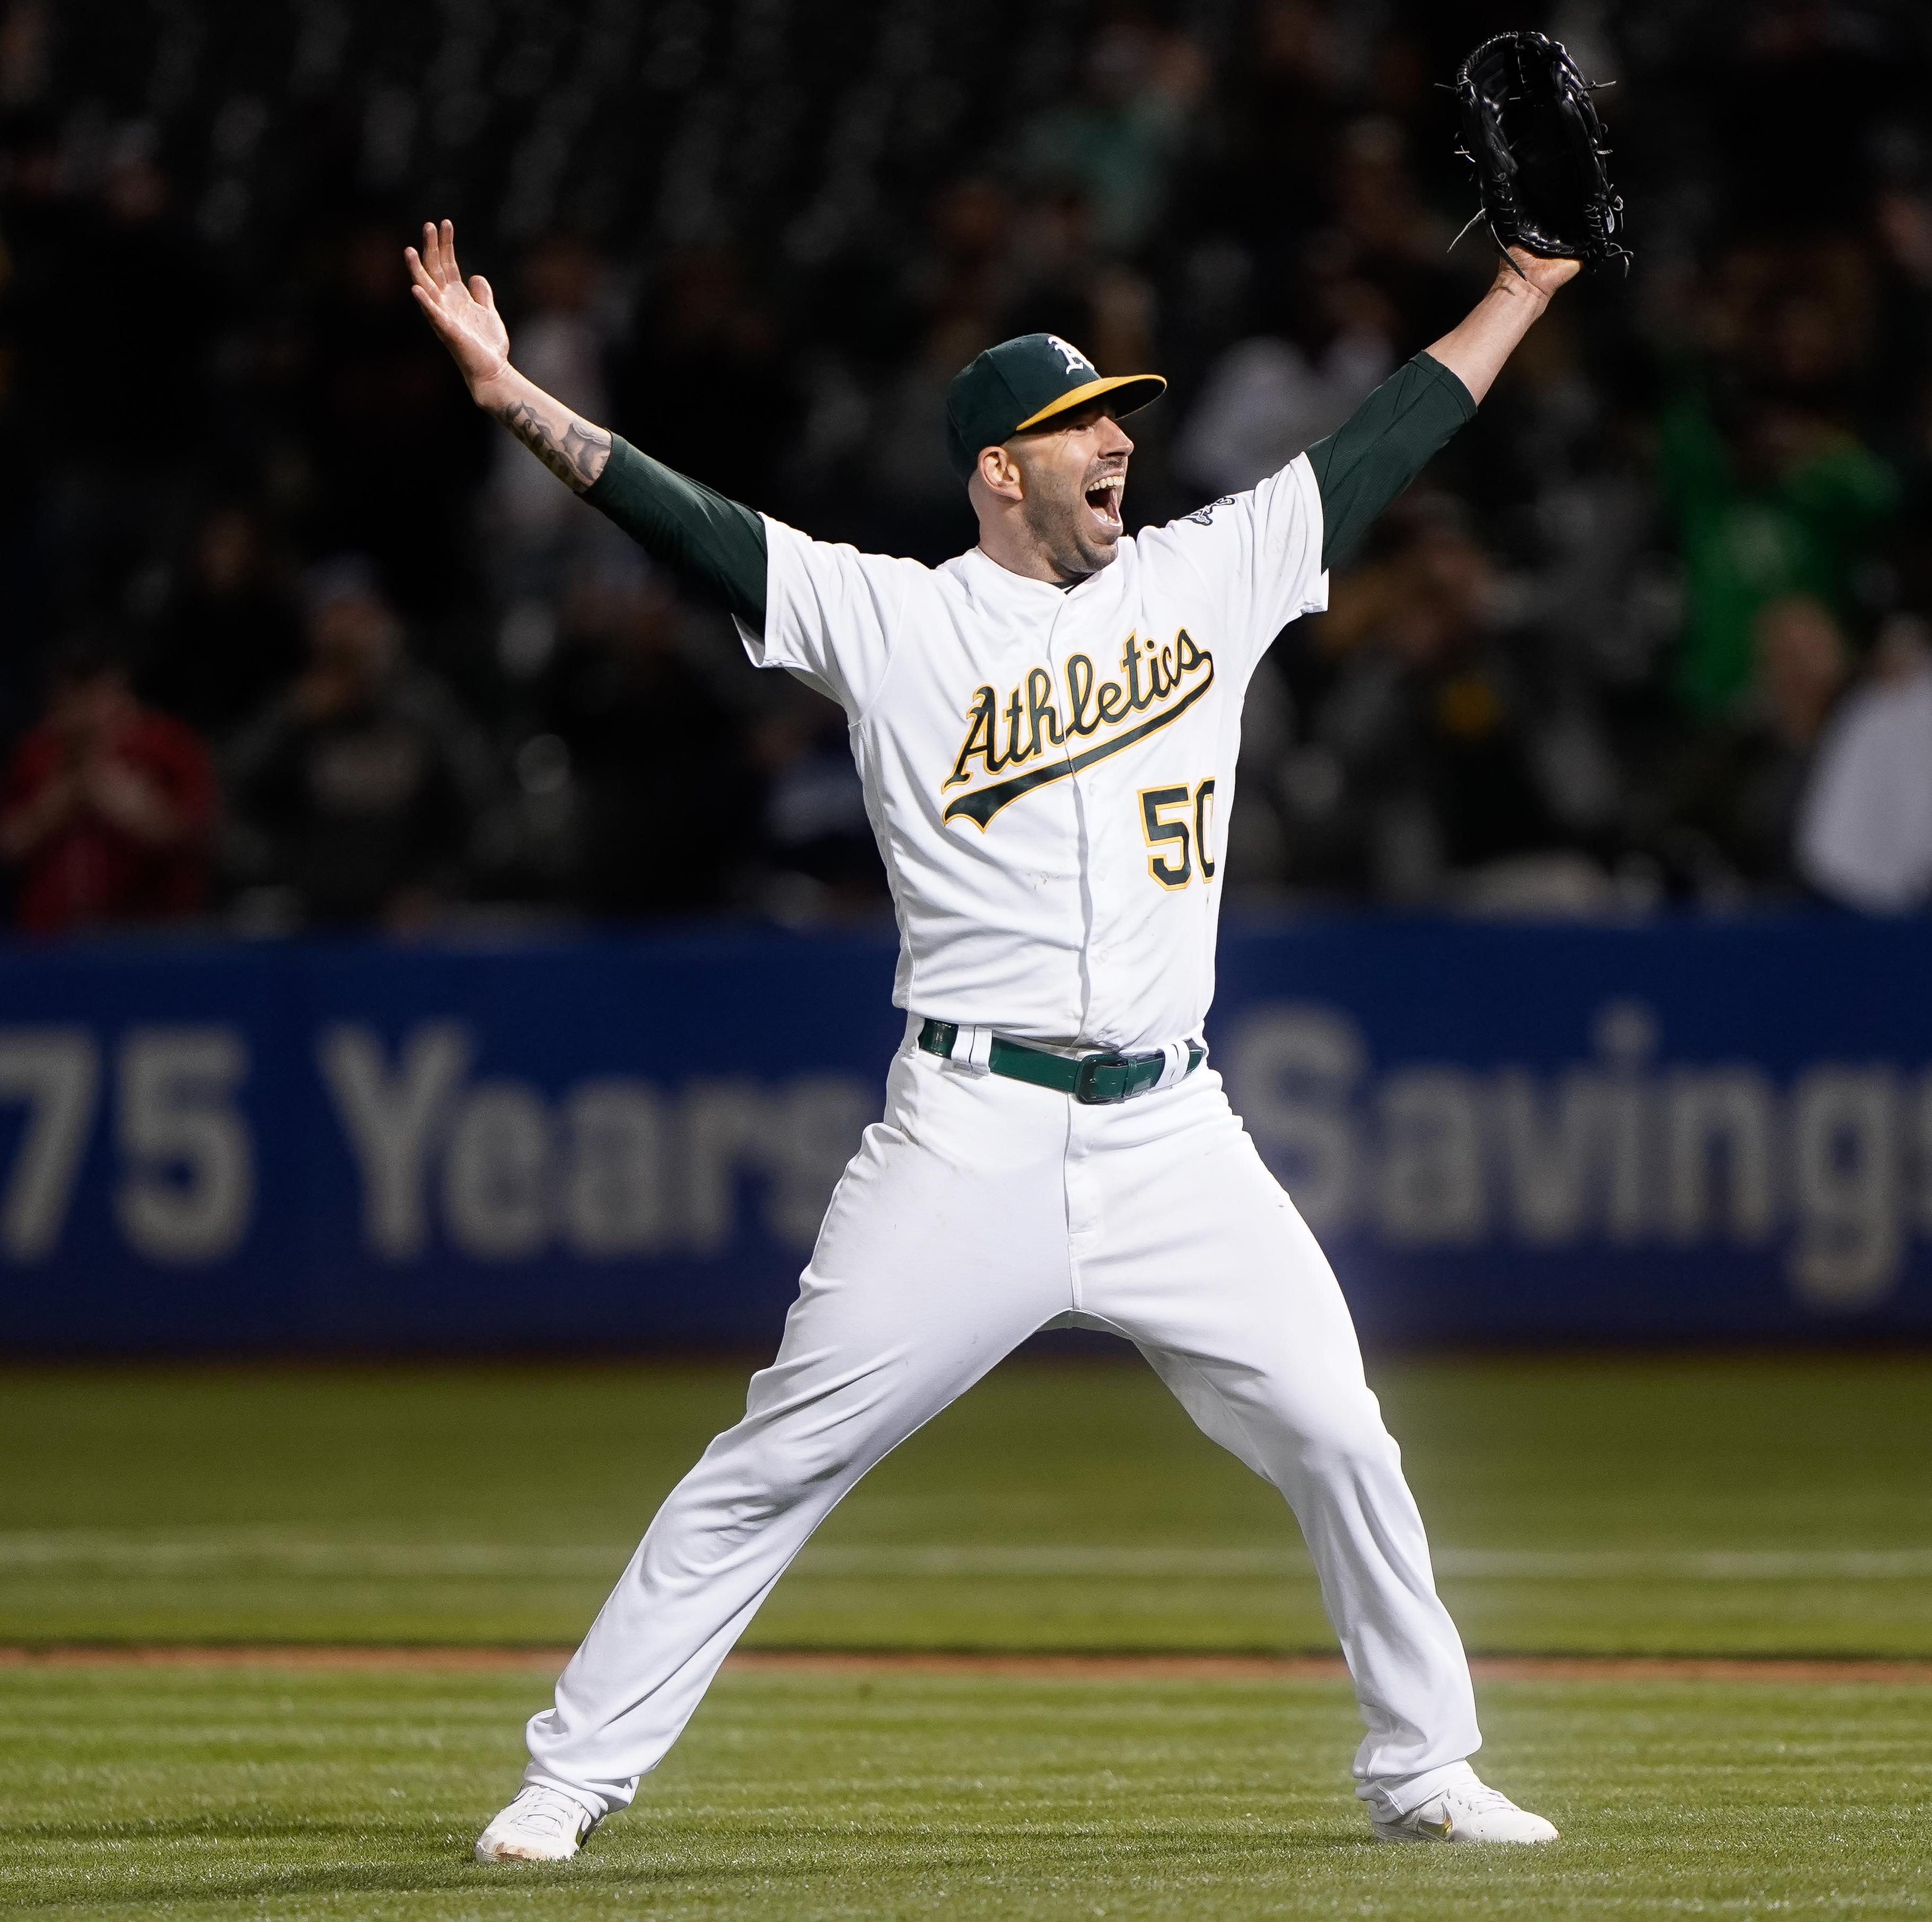 Oakland Athletics pitcher Mike Fiers tosses a no-hitter against Cincinnati Reds